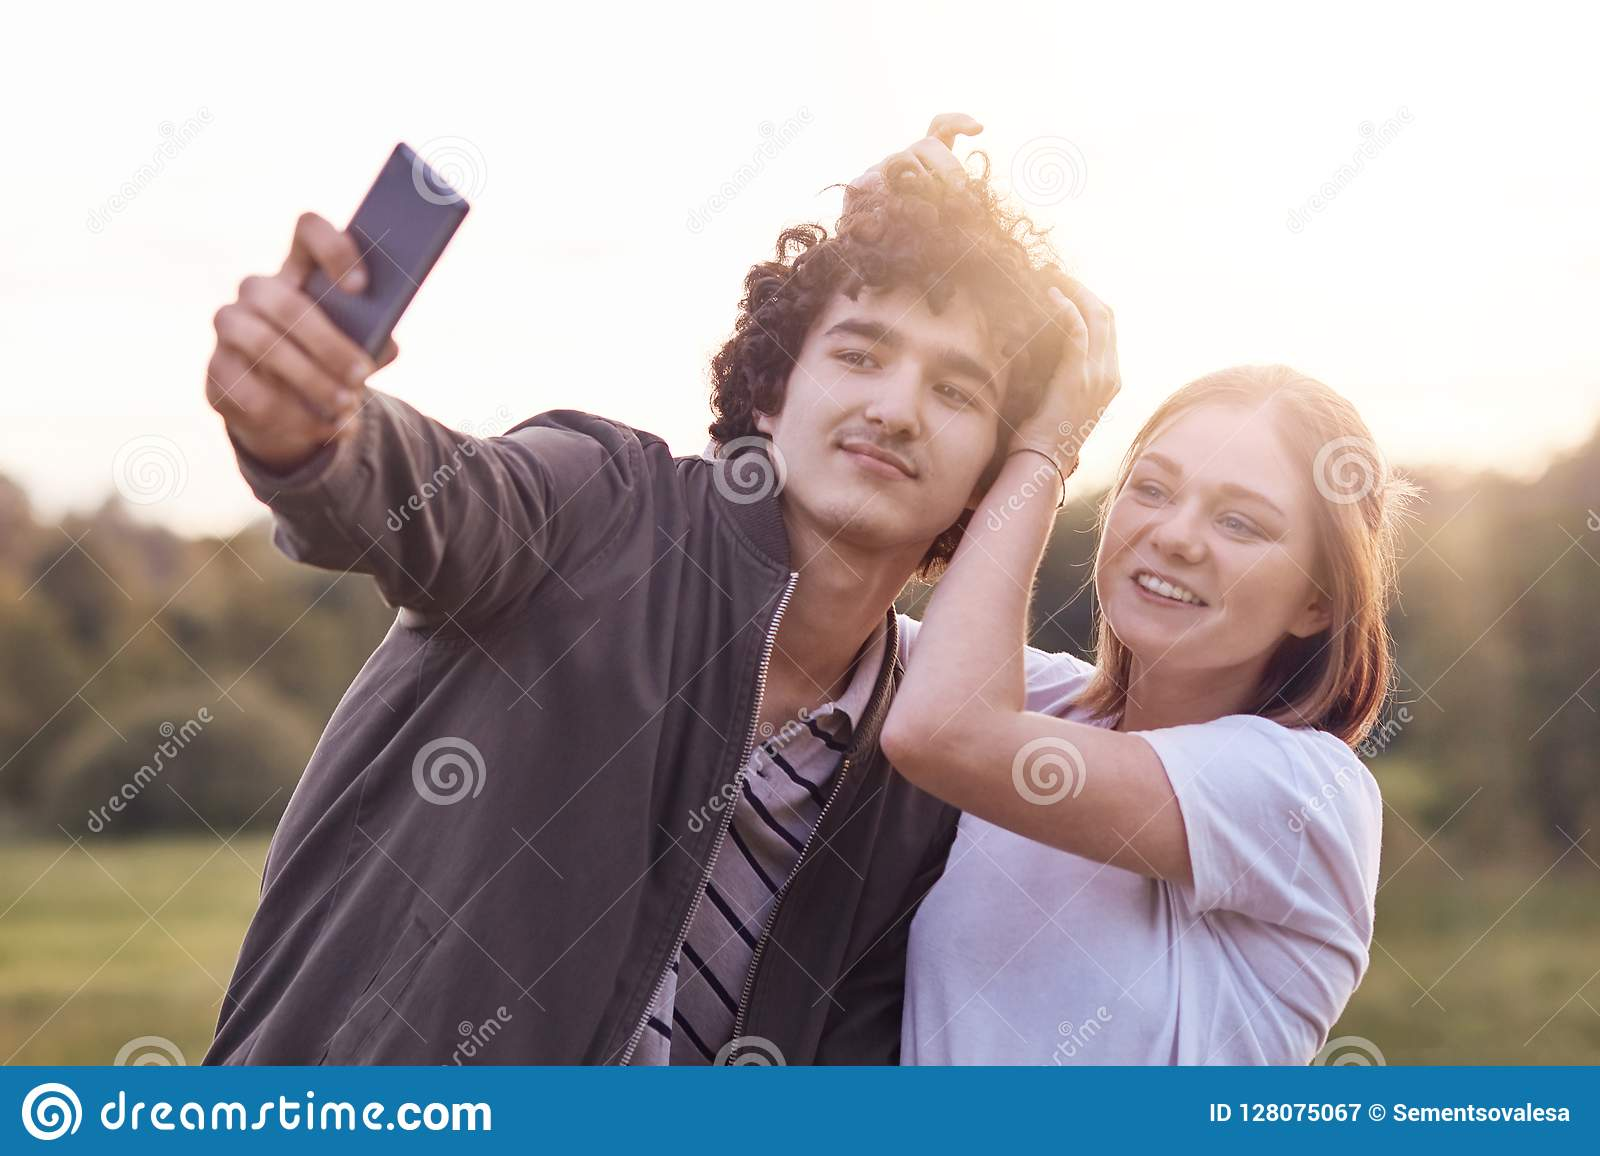 Funny Curly Male Youngster And His Girlfriend Pose For Making Selfie Portrait Against Blurred Nature Background Have Positive Exp Stock Image Image Of Girlfriend Relaxation 128075067